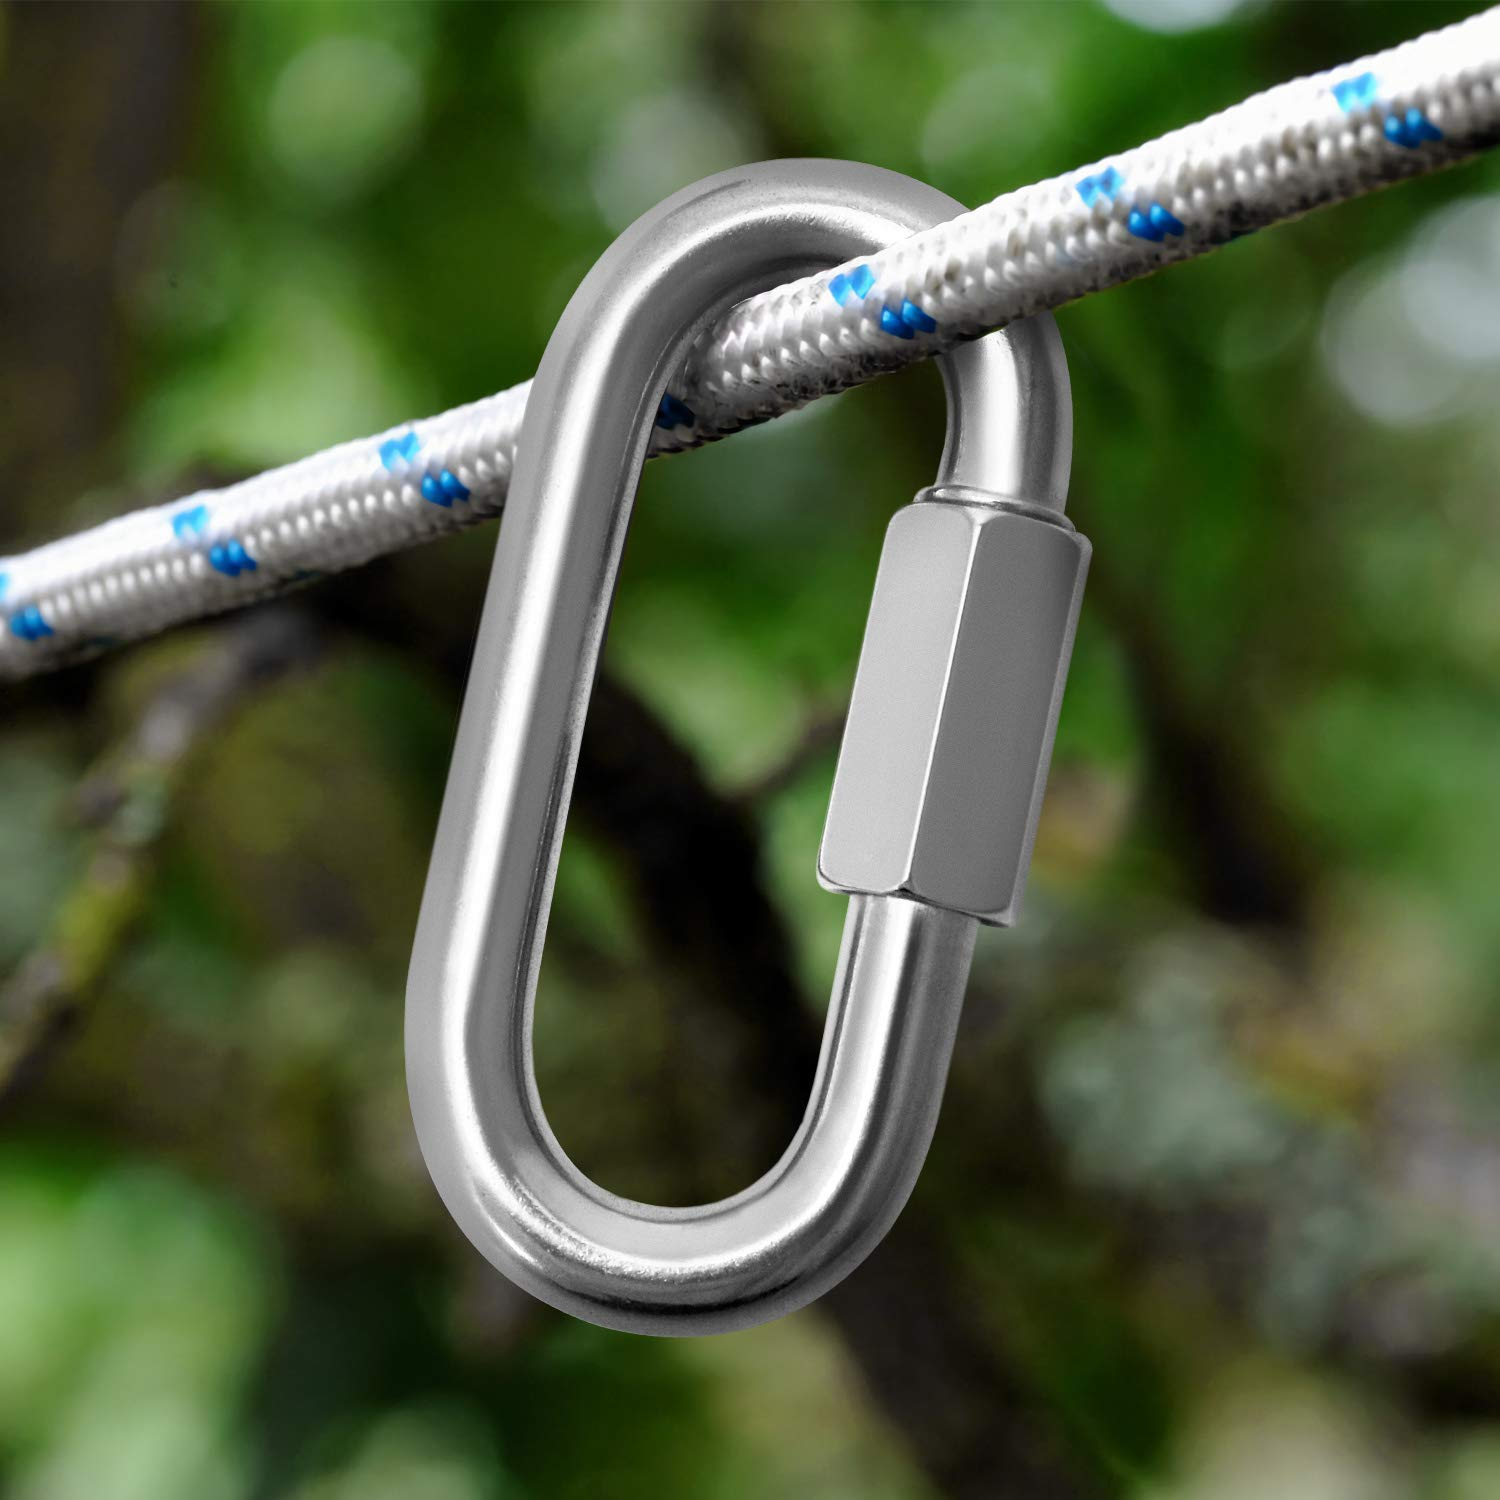 Hammock and Camping QWORK 6 Pack Quick Link M4 Chain Connector 304 Stainless Steel Heavy Duty D Shape Locking for Outdoor Traveling Equipment